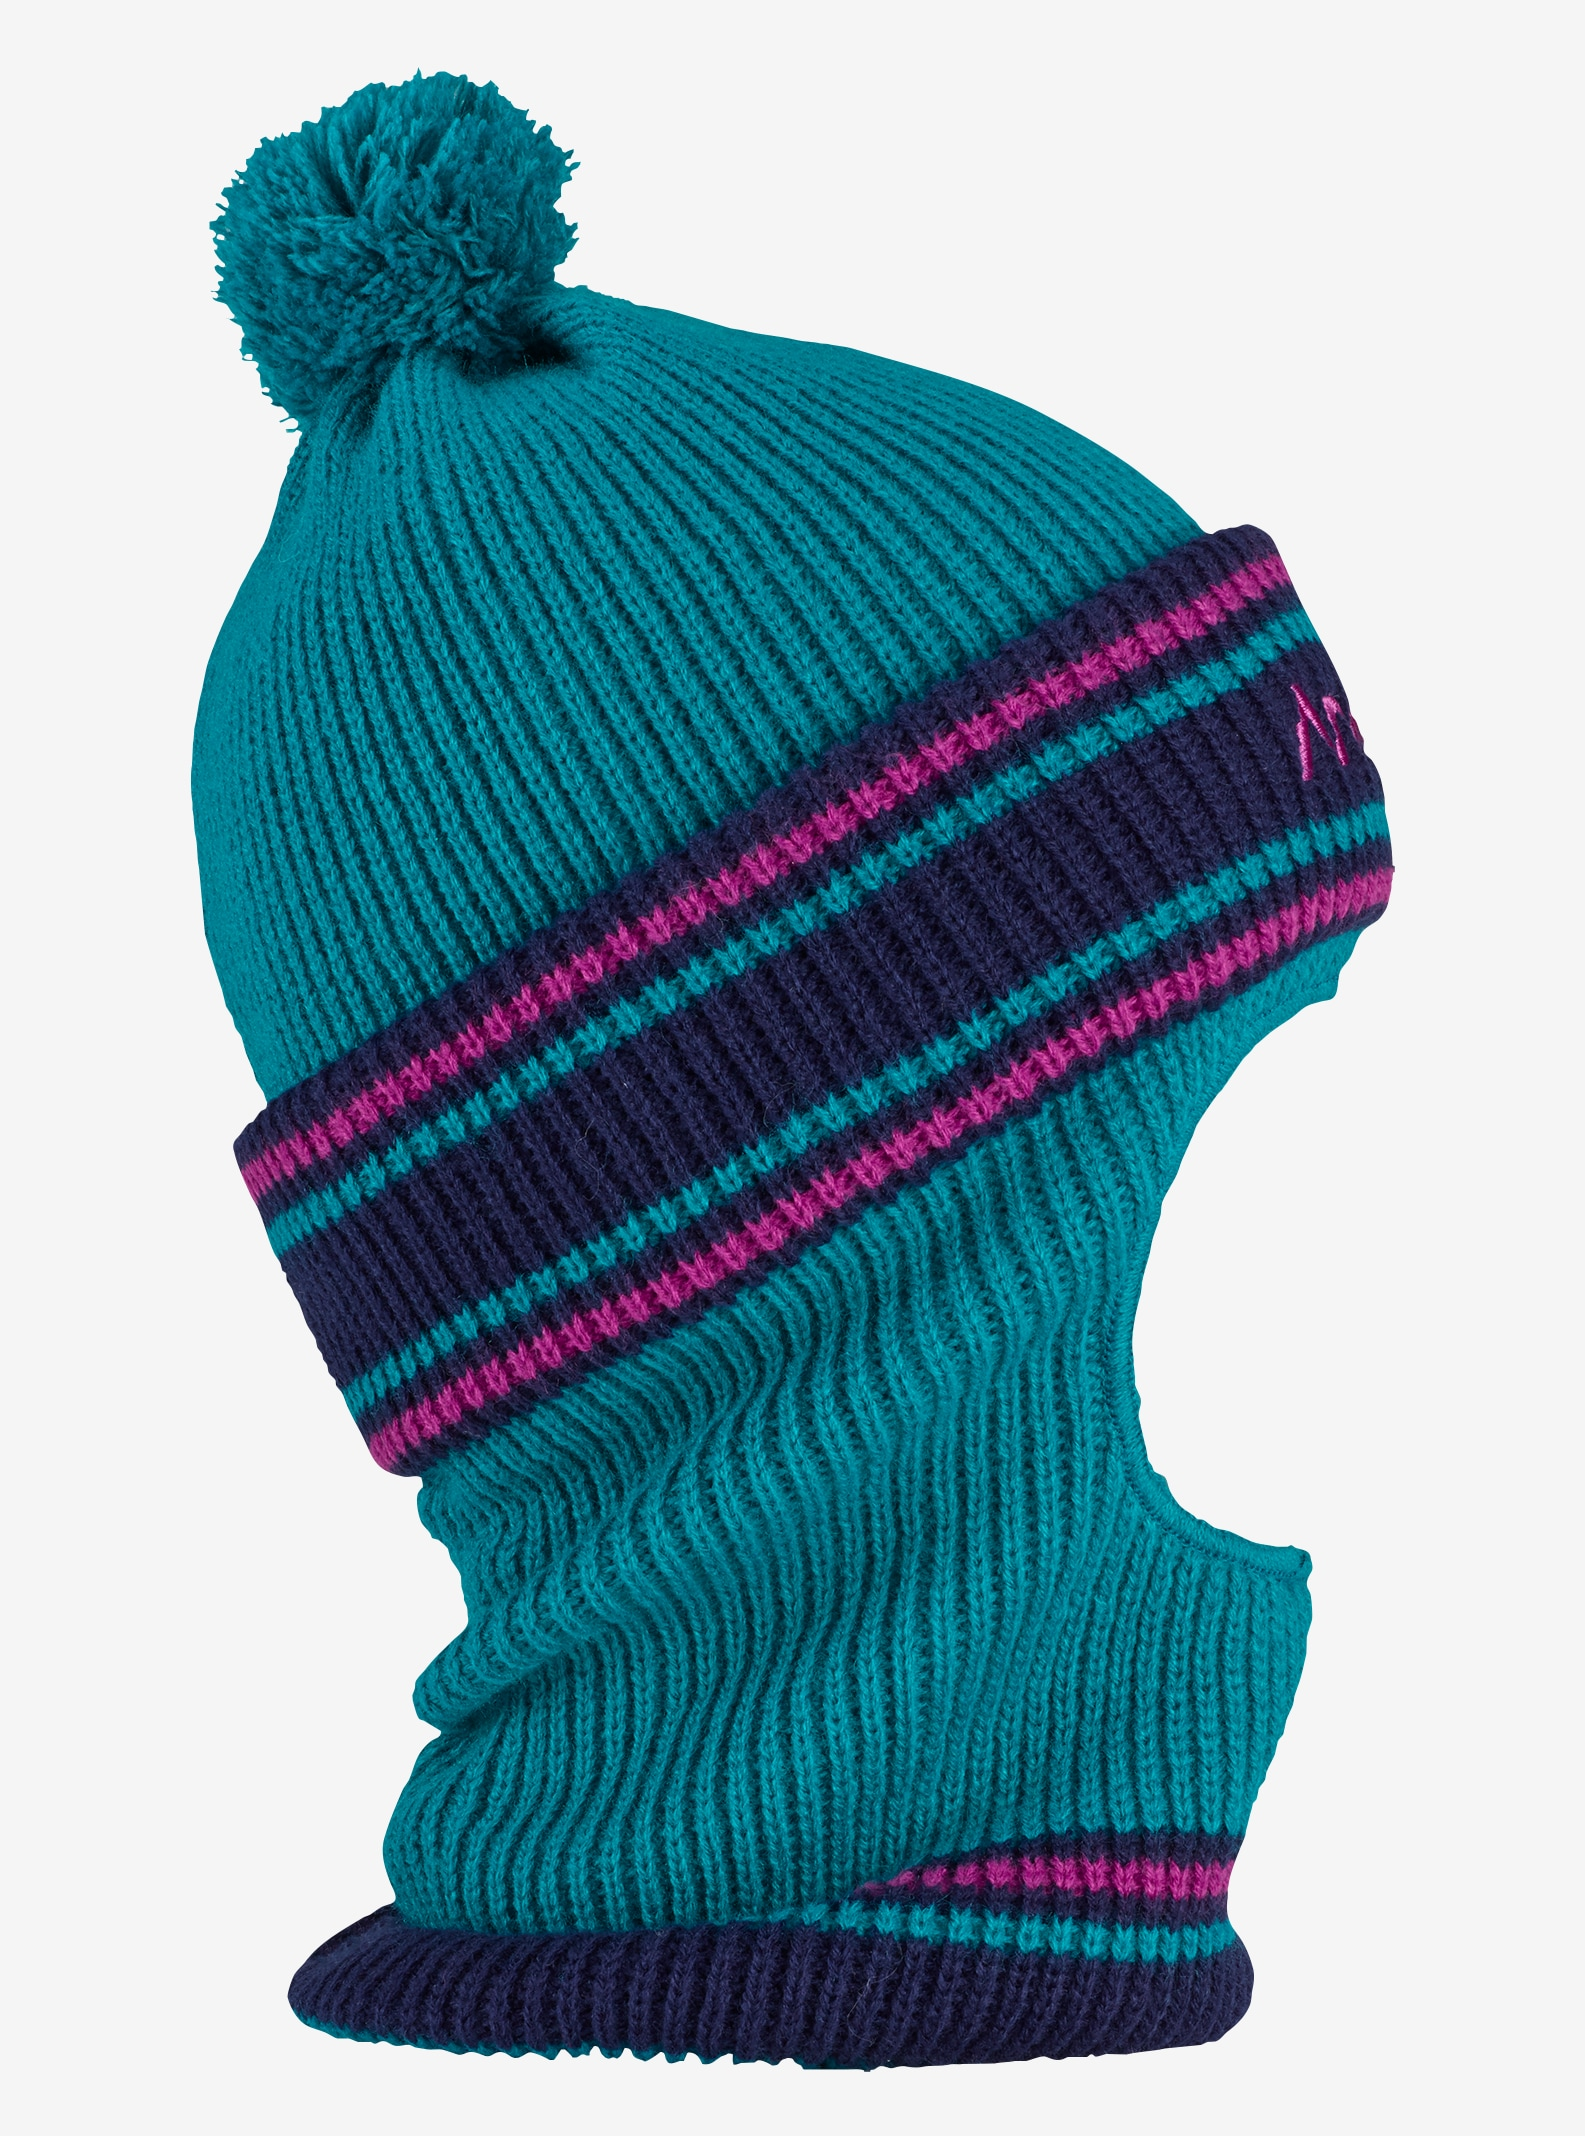 Analog Double D Beanie shown in Blue 107